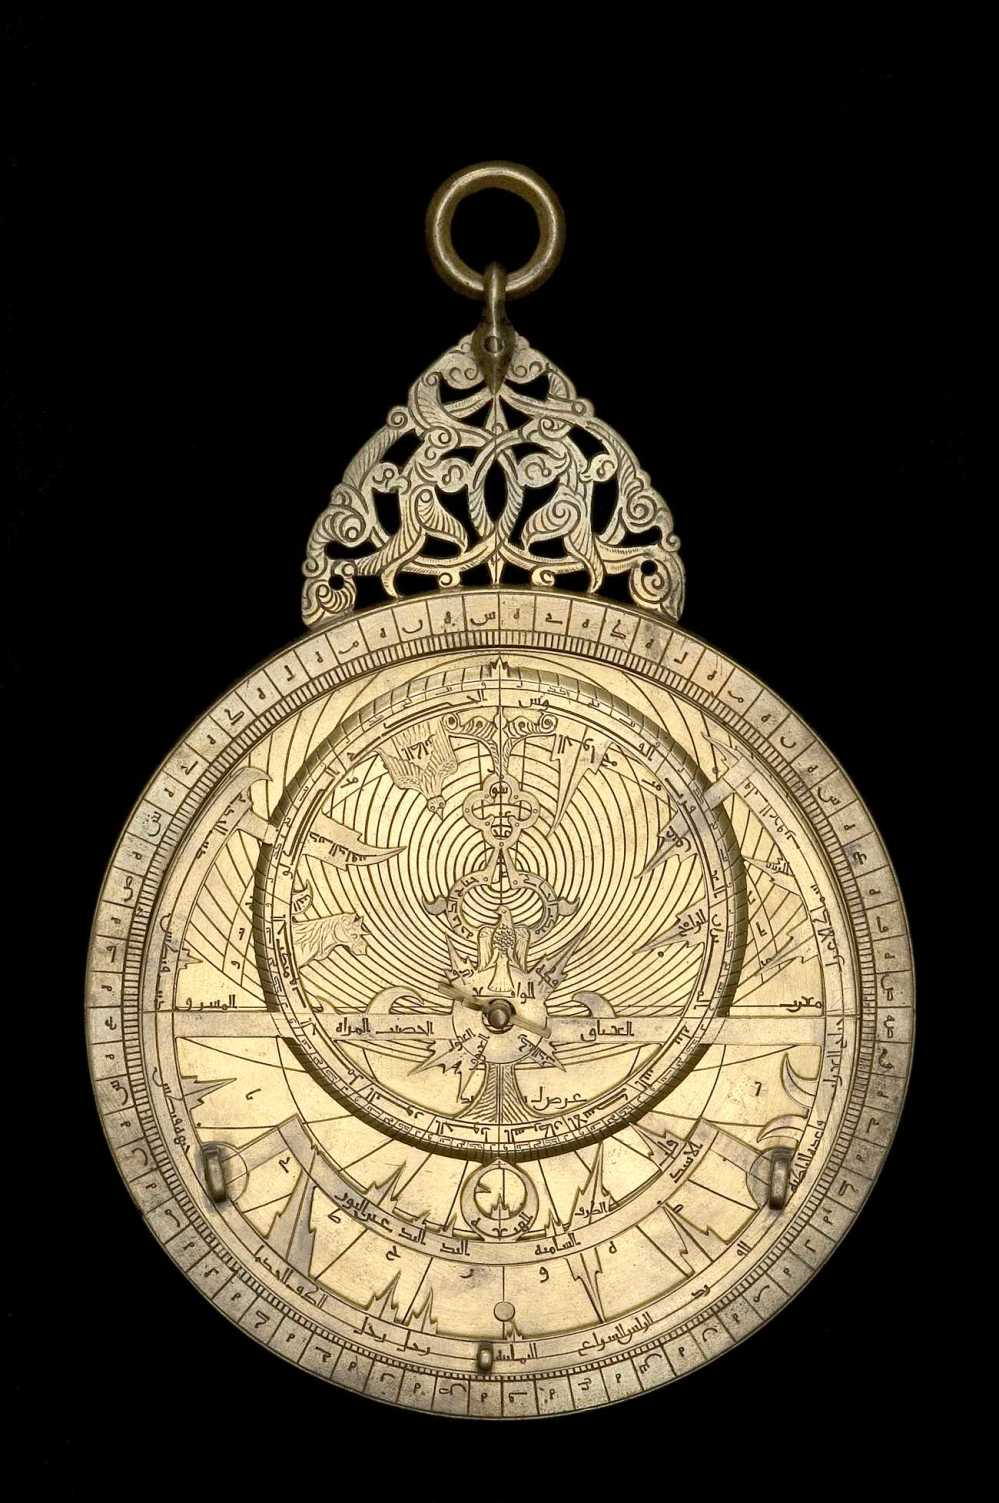 preview image for Astrolabe with Geared Calendar, by Muhammad b. Abi Bakr, Isfahan, 1221/2